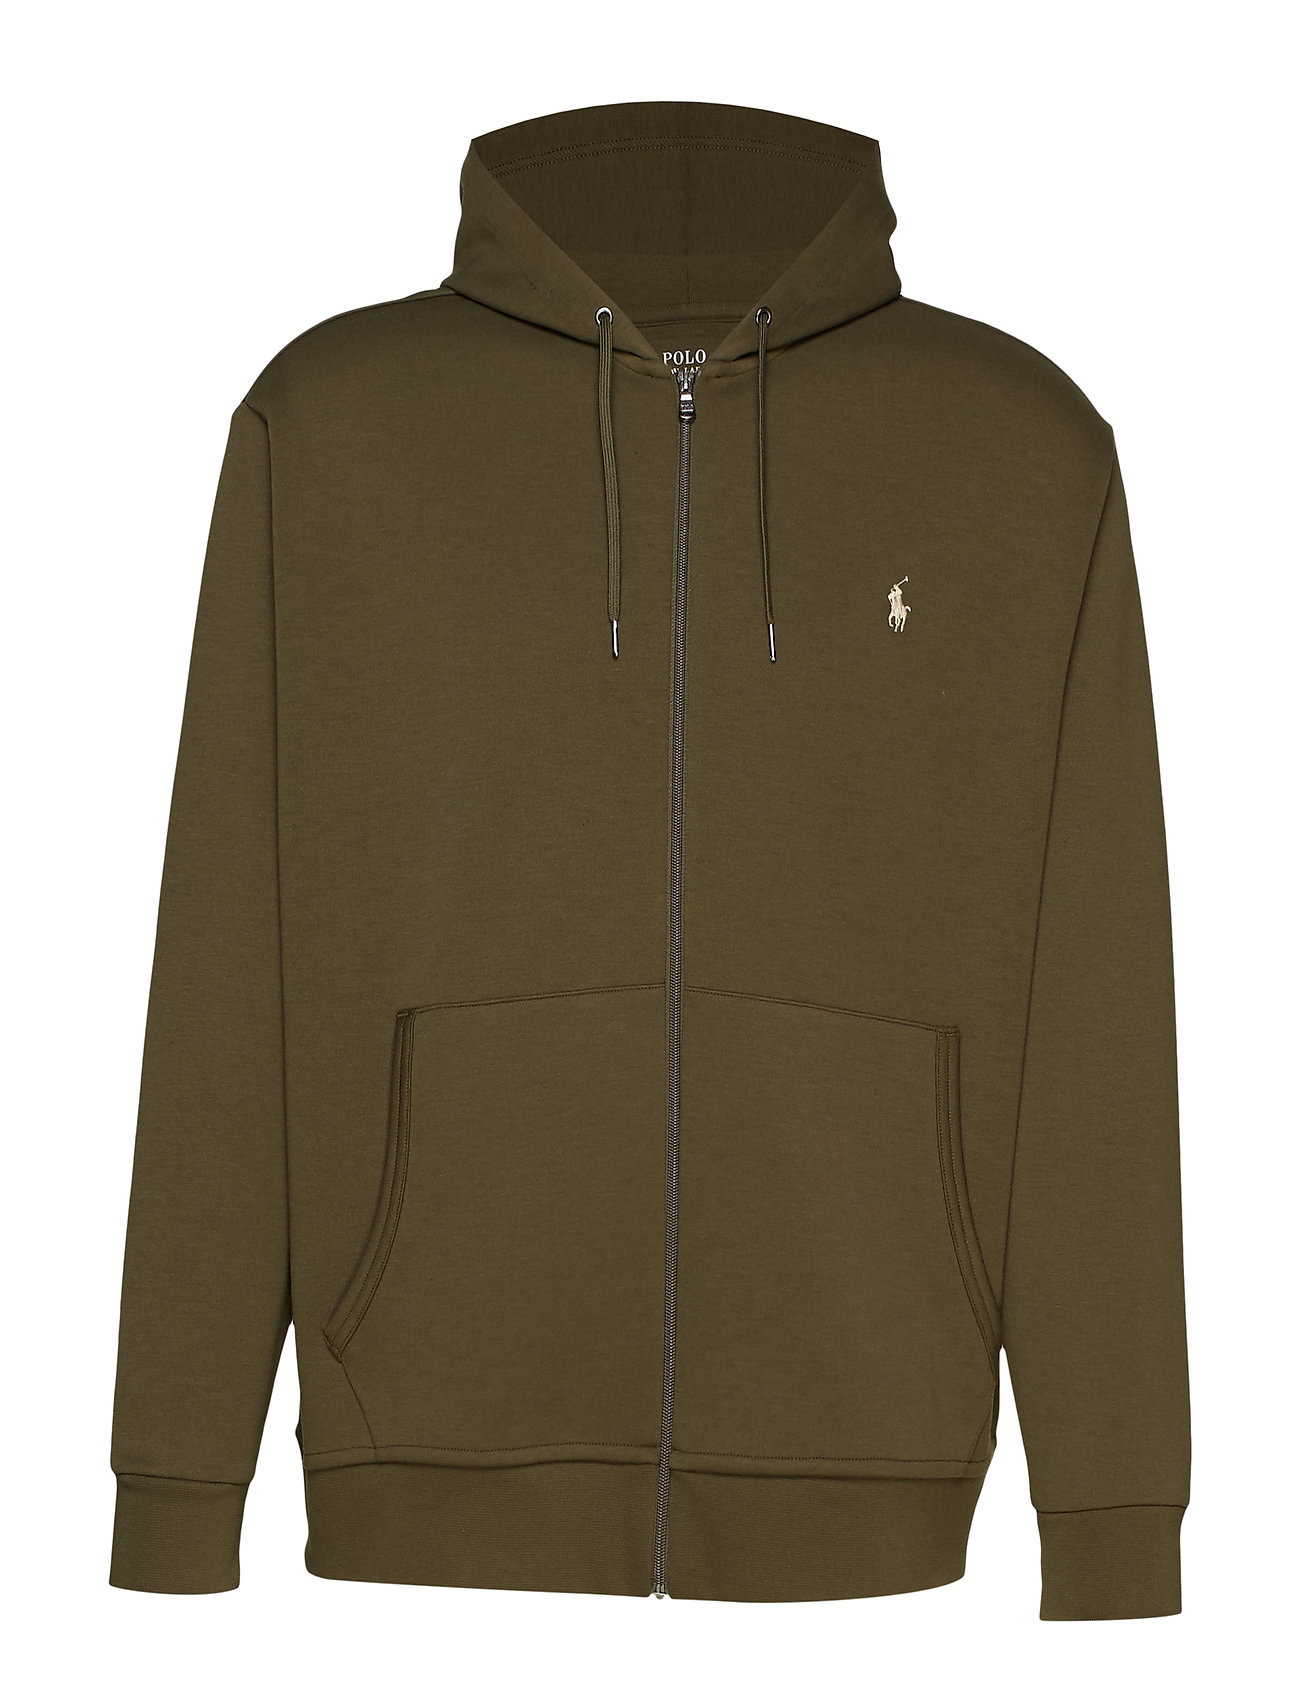 Polo Ralph Lauren Big & Tall Double-Knit Full-Zip Hoodie - COMPANY OLIVE